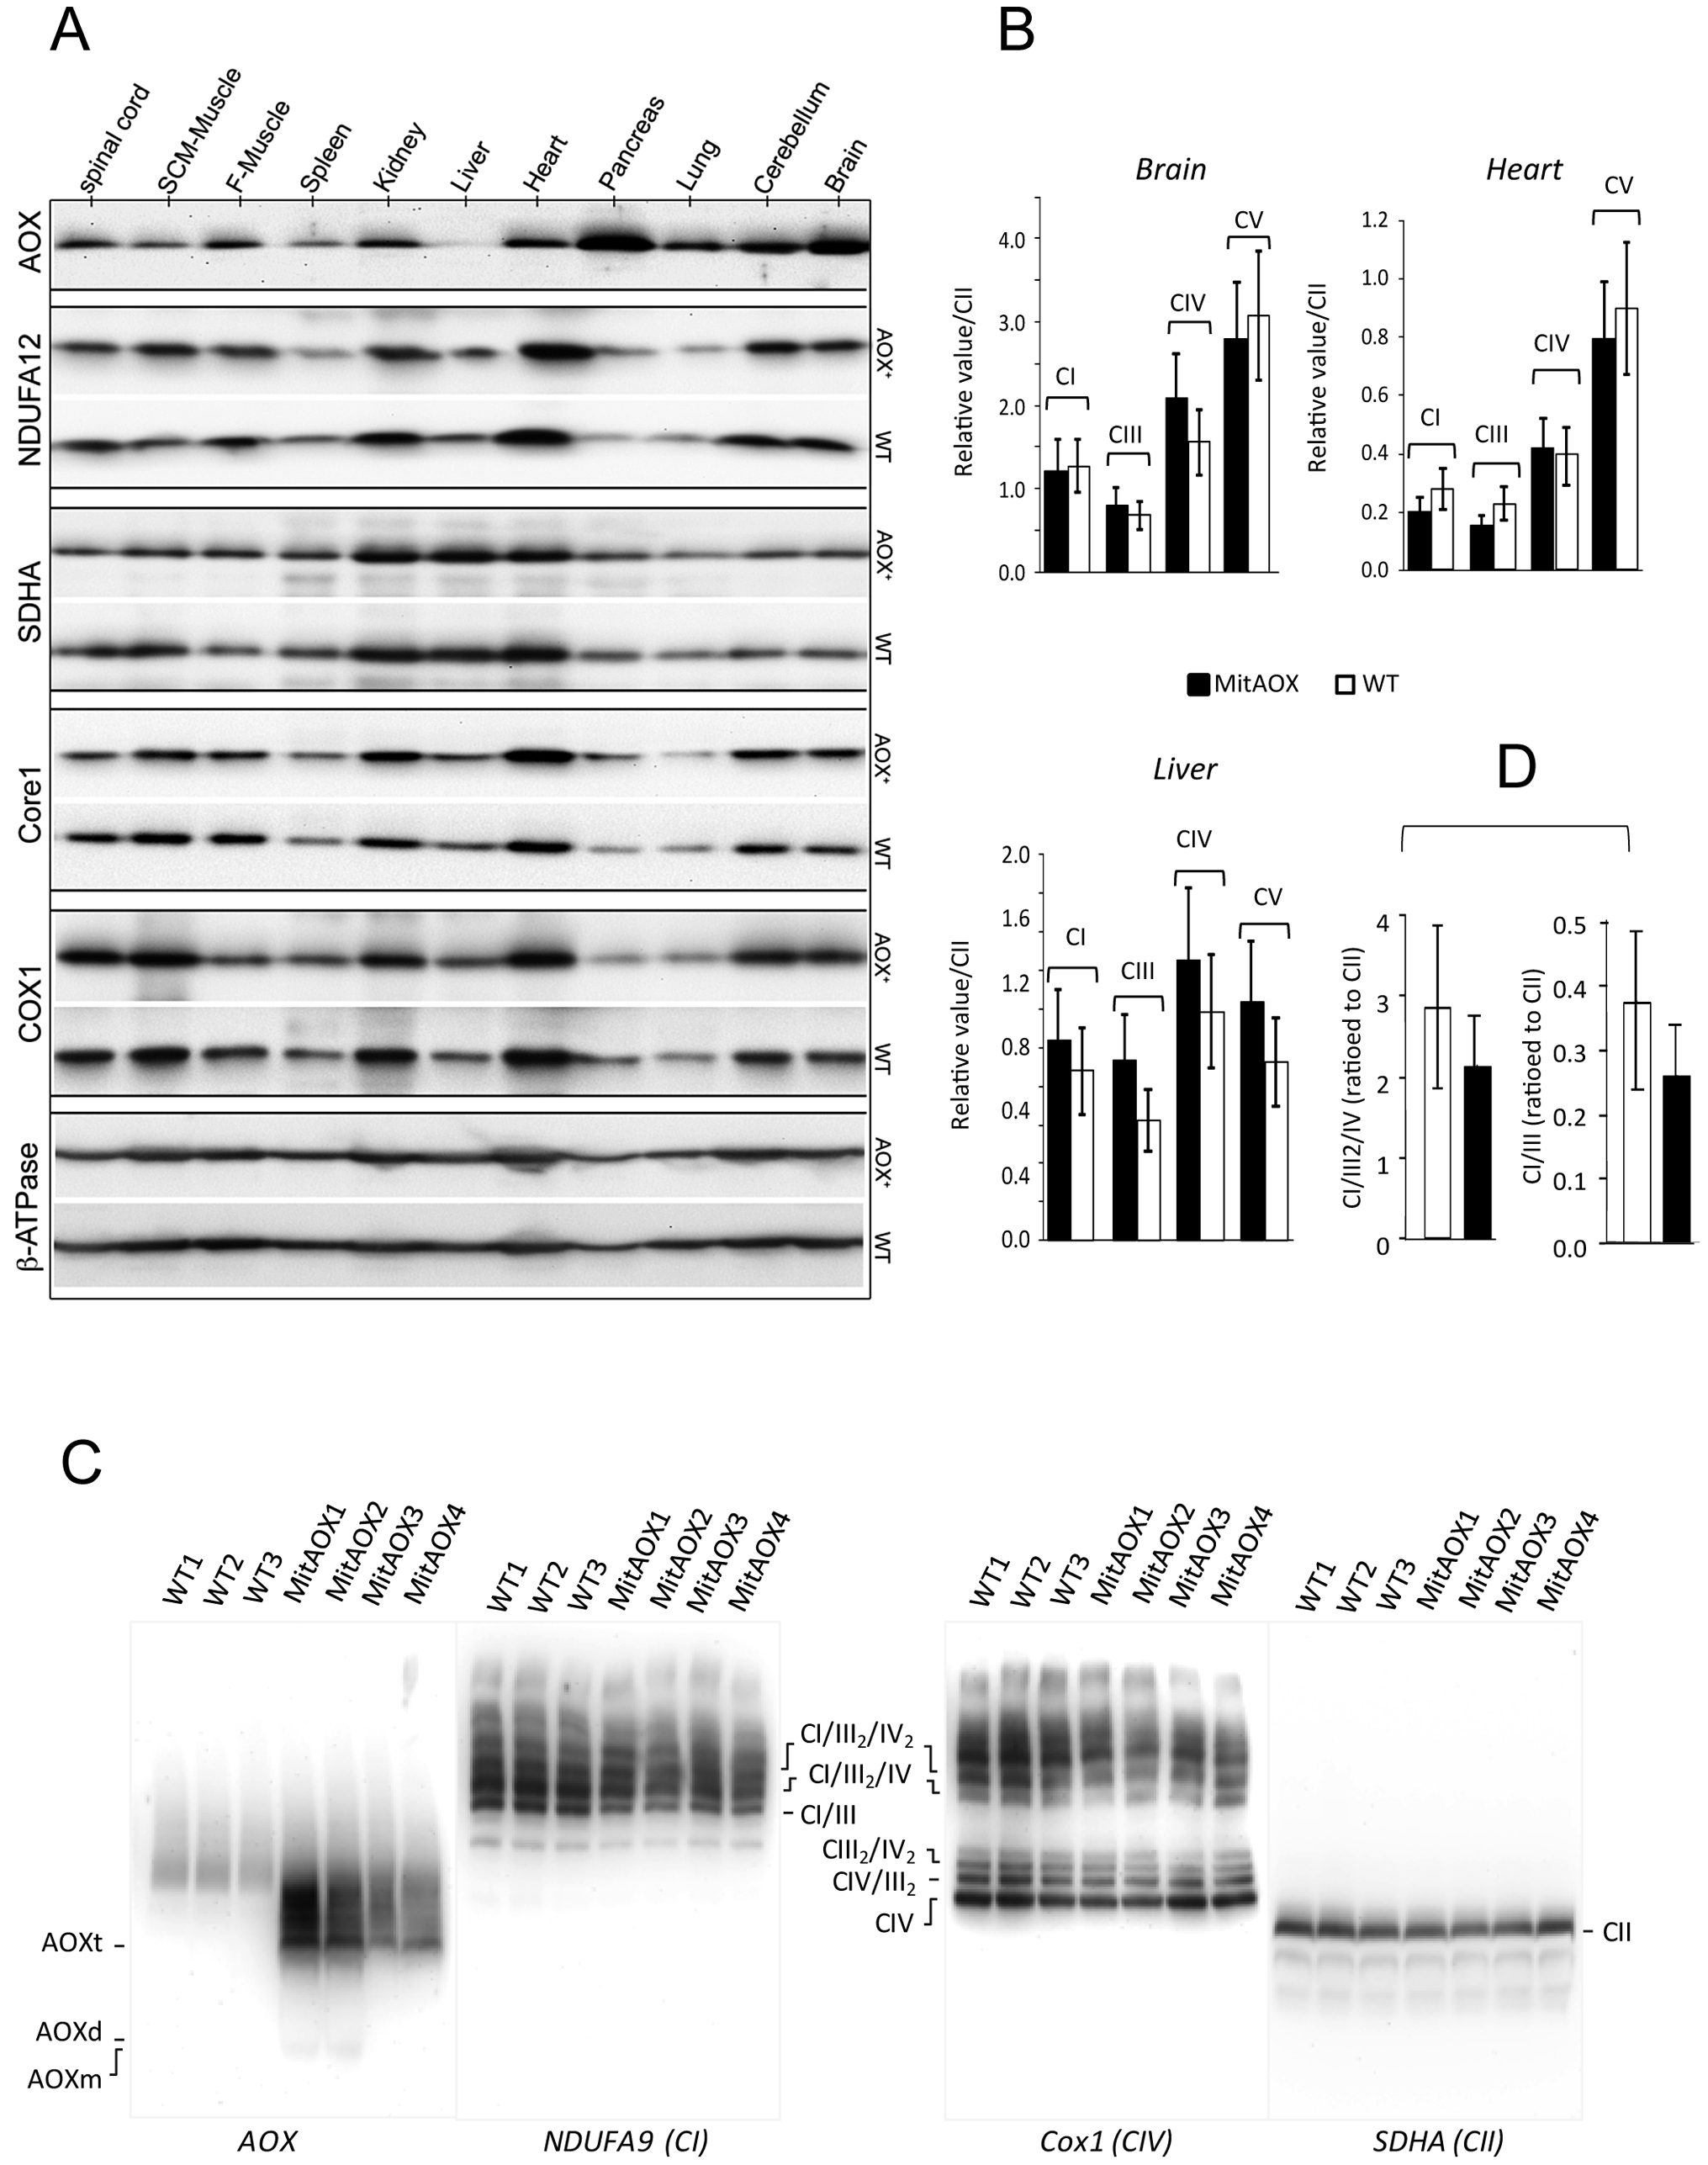 Western-blot and BN-PAGE analyses of brain mitochondria from WT and AOX mice.